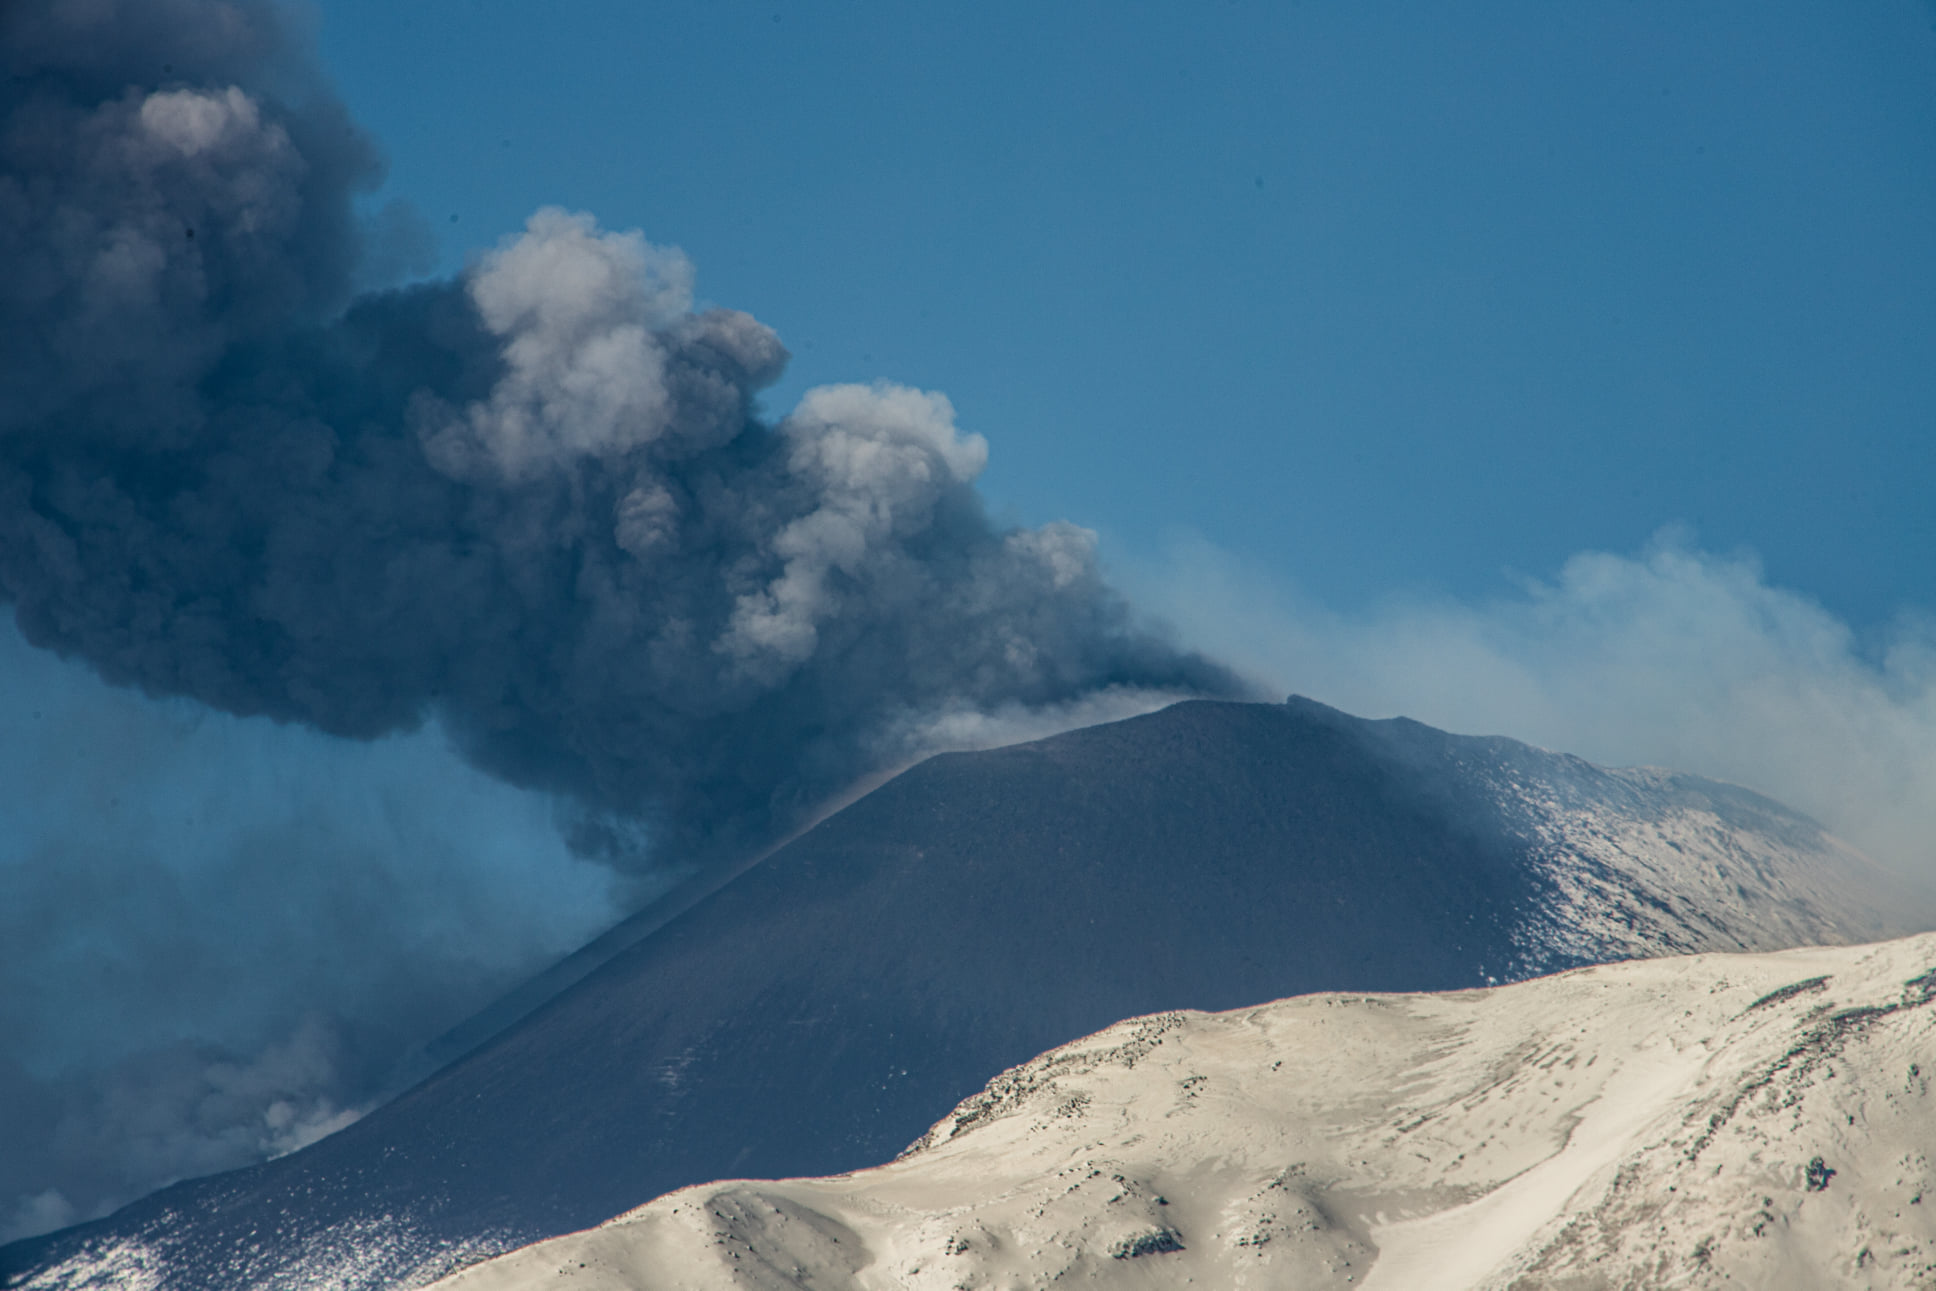 March 26, 2021. EN. Philippines : Taal , Italy / Sicily : Etna , Guatemala : Pacaya , Chile / Argentina : Nevados of Chillan , Hawaii : Kilauea .